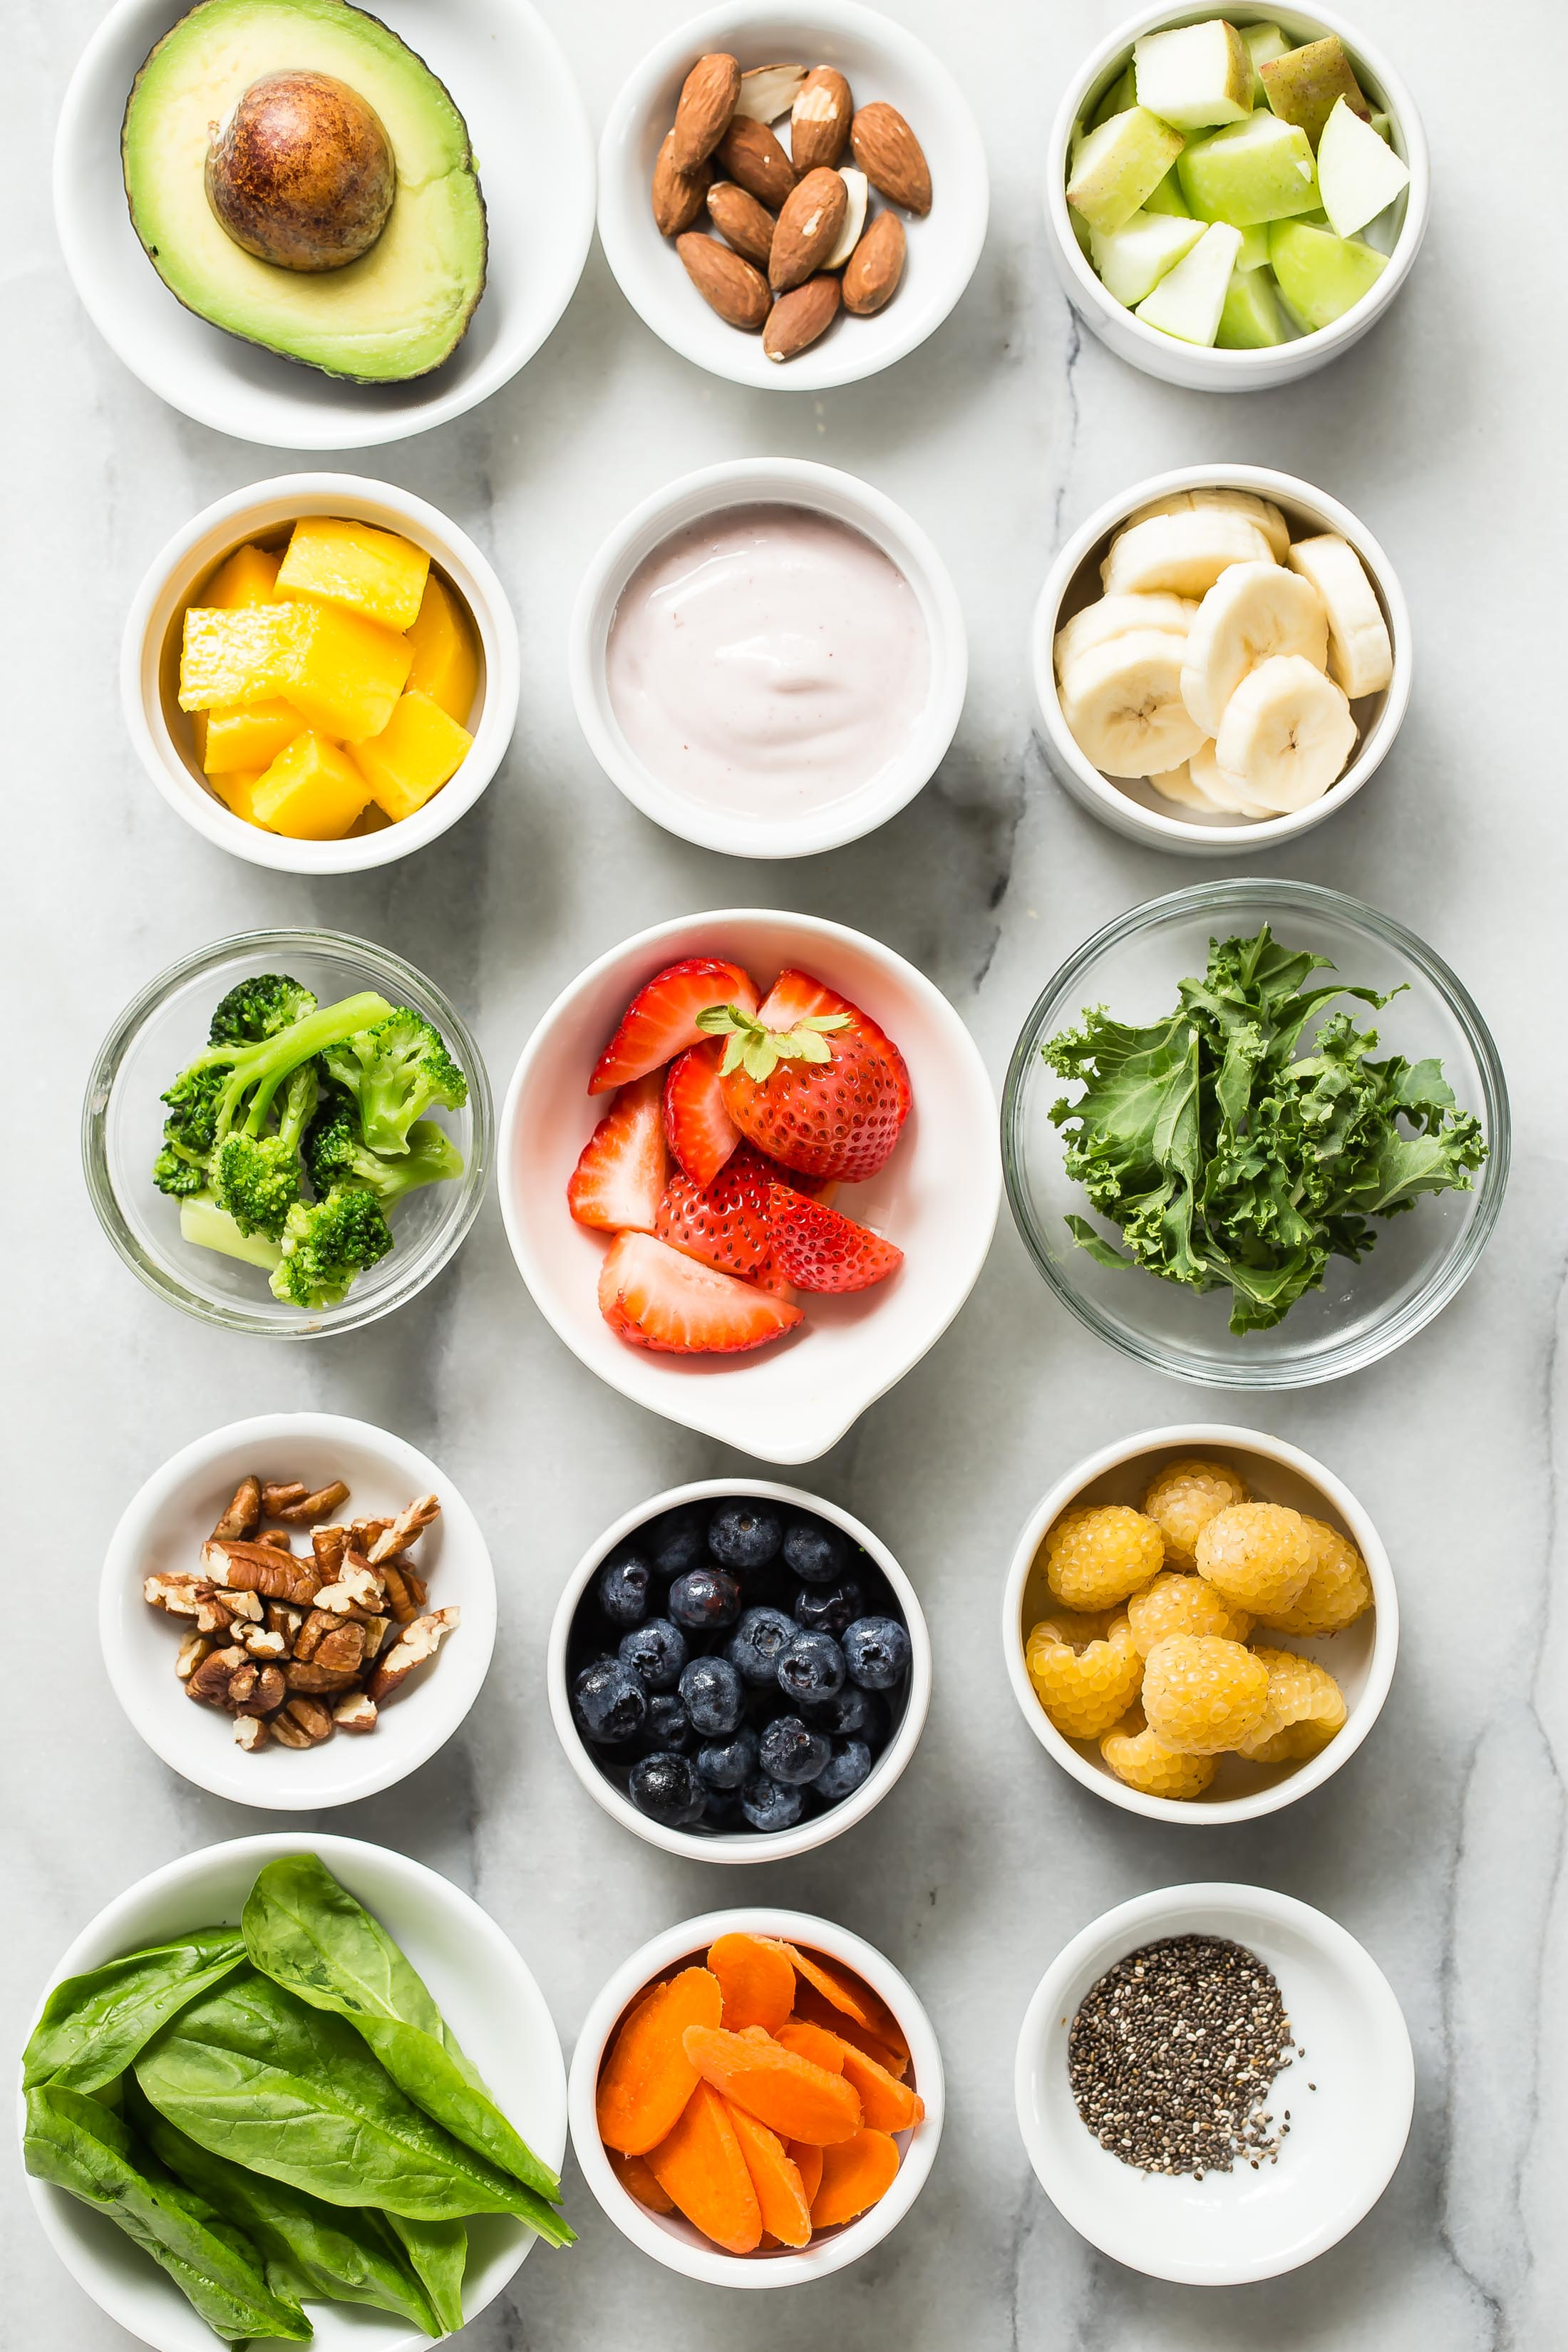 variety of fruits, veggies, proteins for smoothies